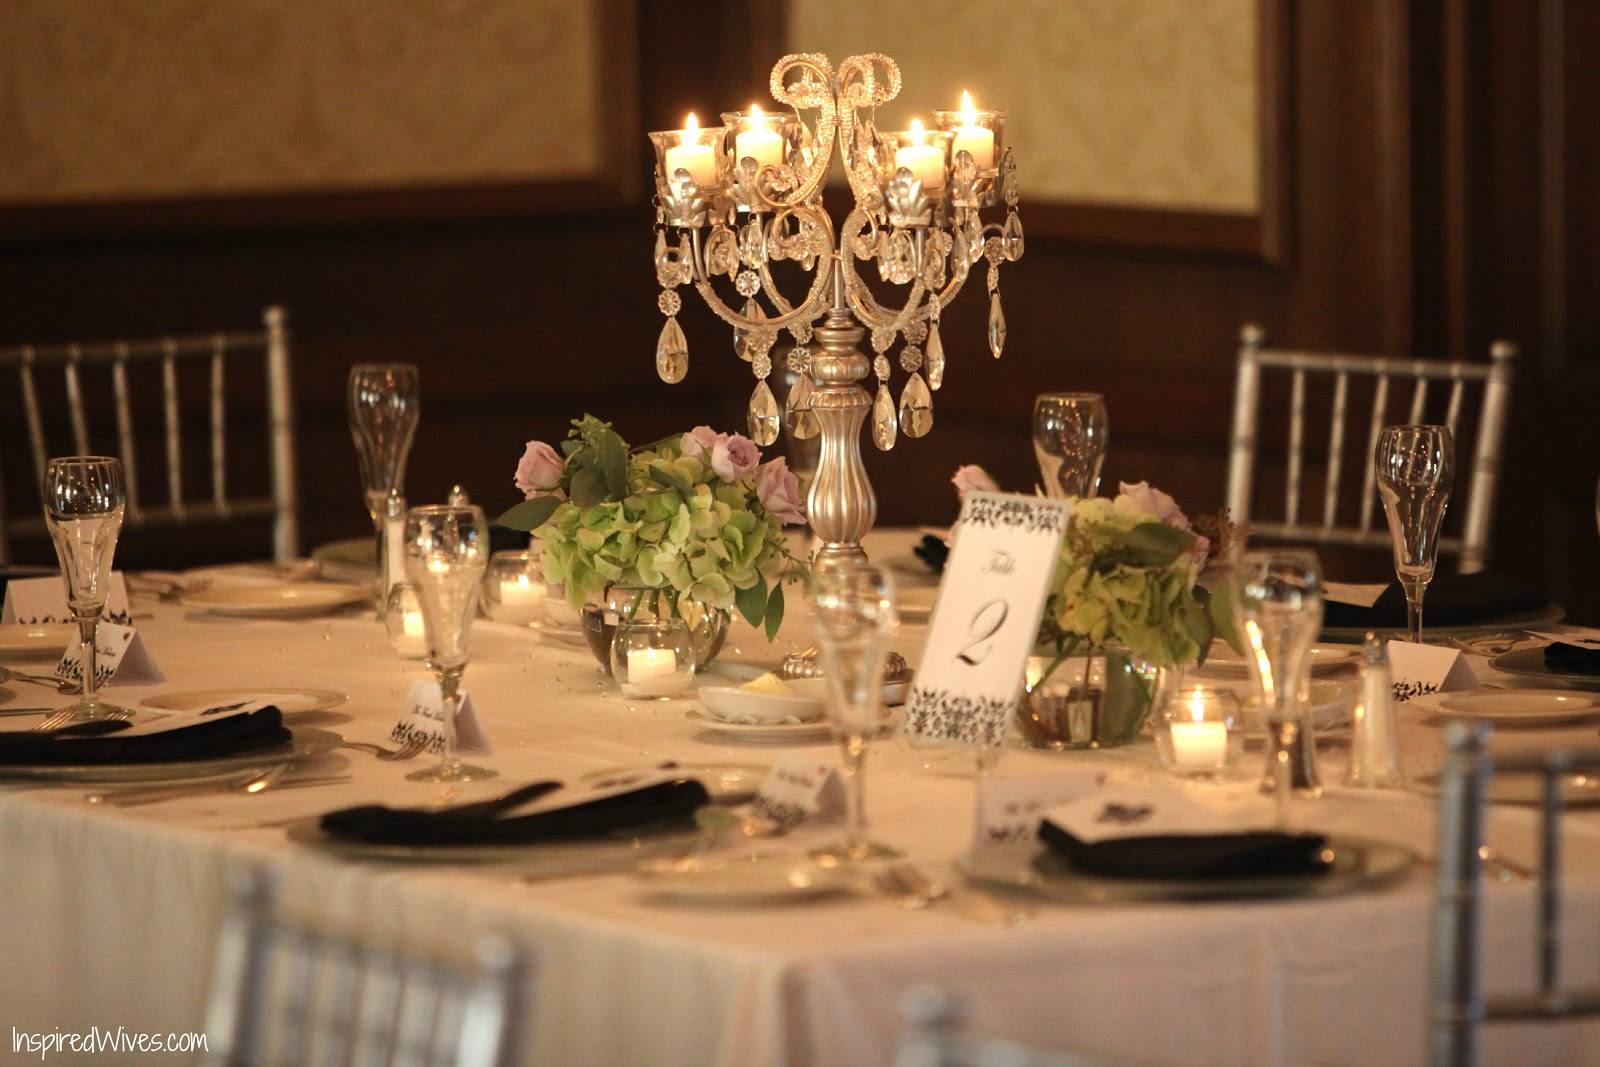 inspired i dos candelabra wedding centerpieces. Black Bedroom Furniture Sets. Home Design Ideas